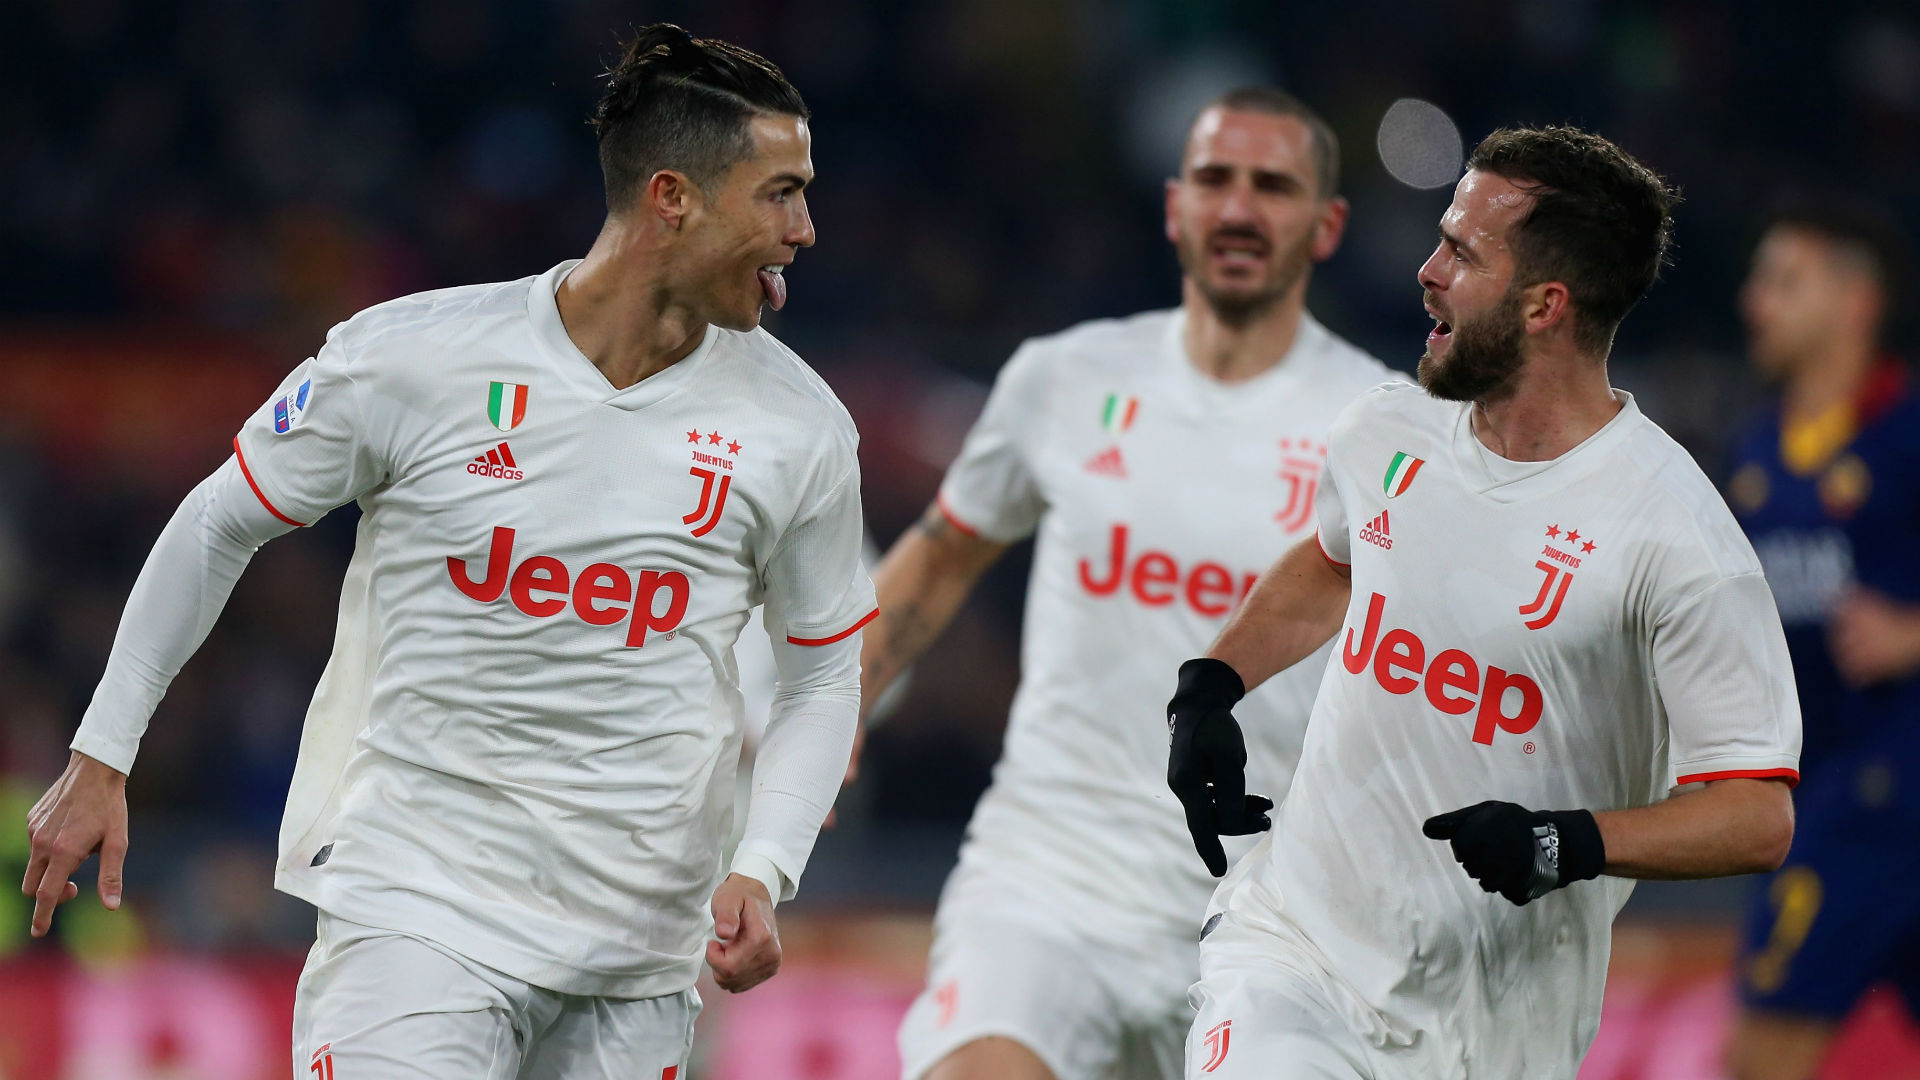 Roma 1-2 Juventus: Two early goals see Bianconeri go top